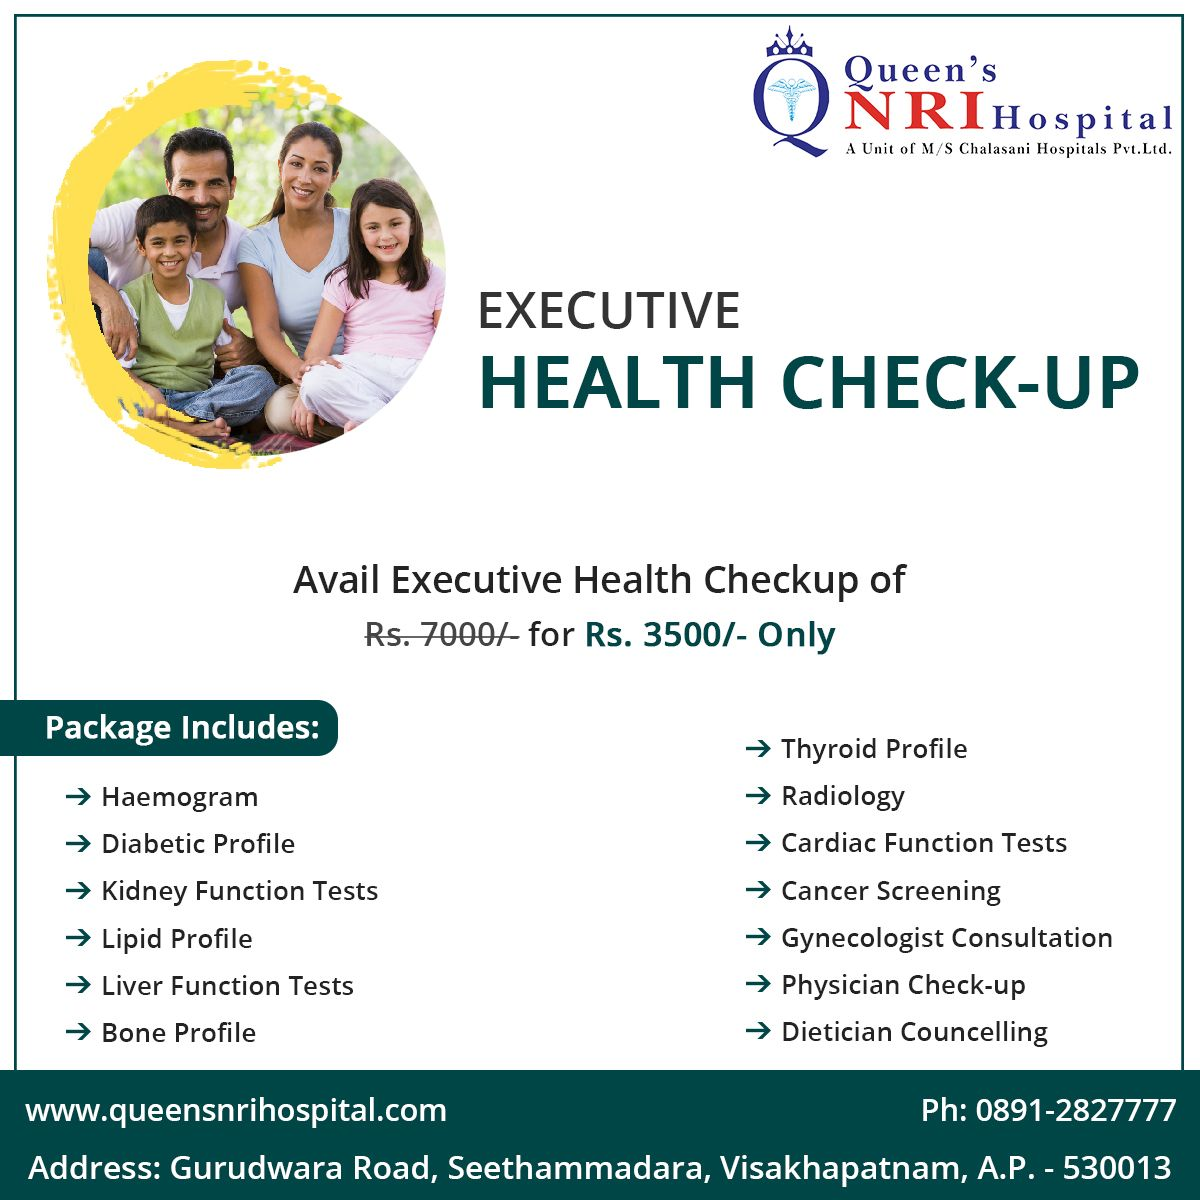 Executive Health Checkup Package Avail For Rs 3 500 For Appointments Dial 0891 2827777 Or Live Chat With Us At Ww Health Check Best Hospitals Checkup